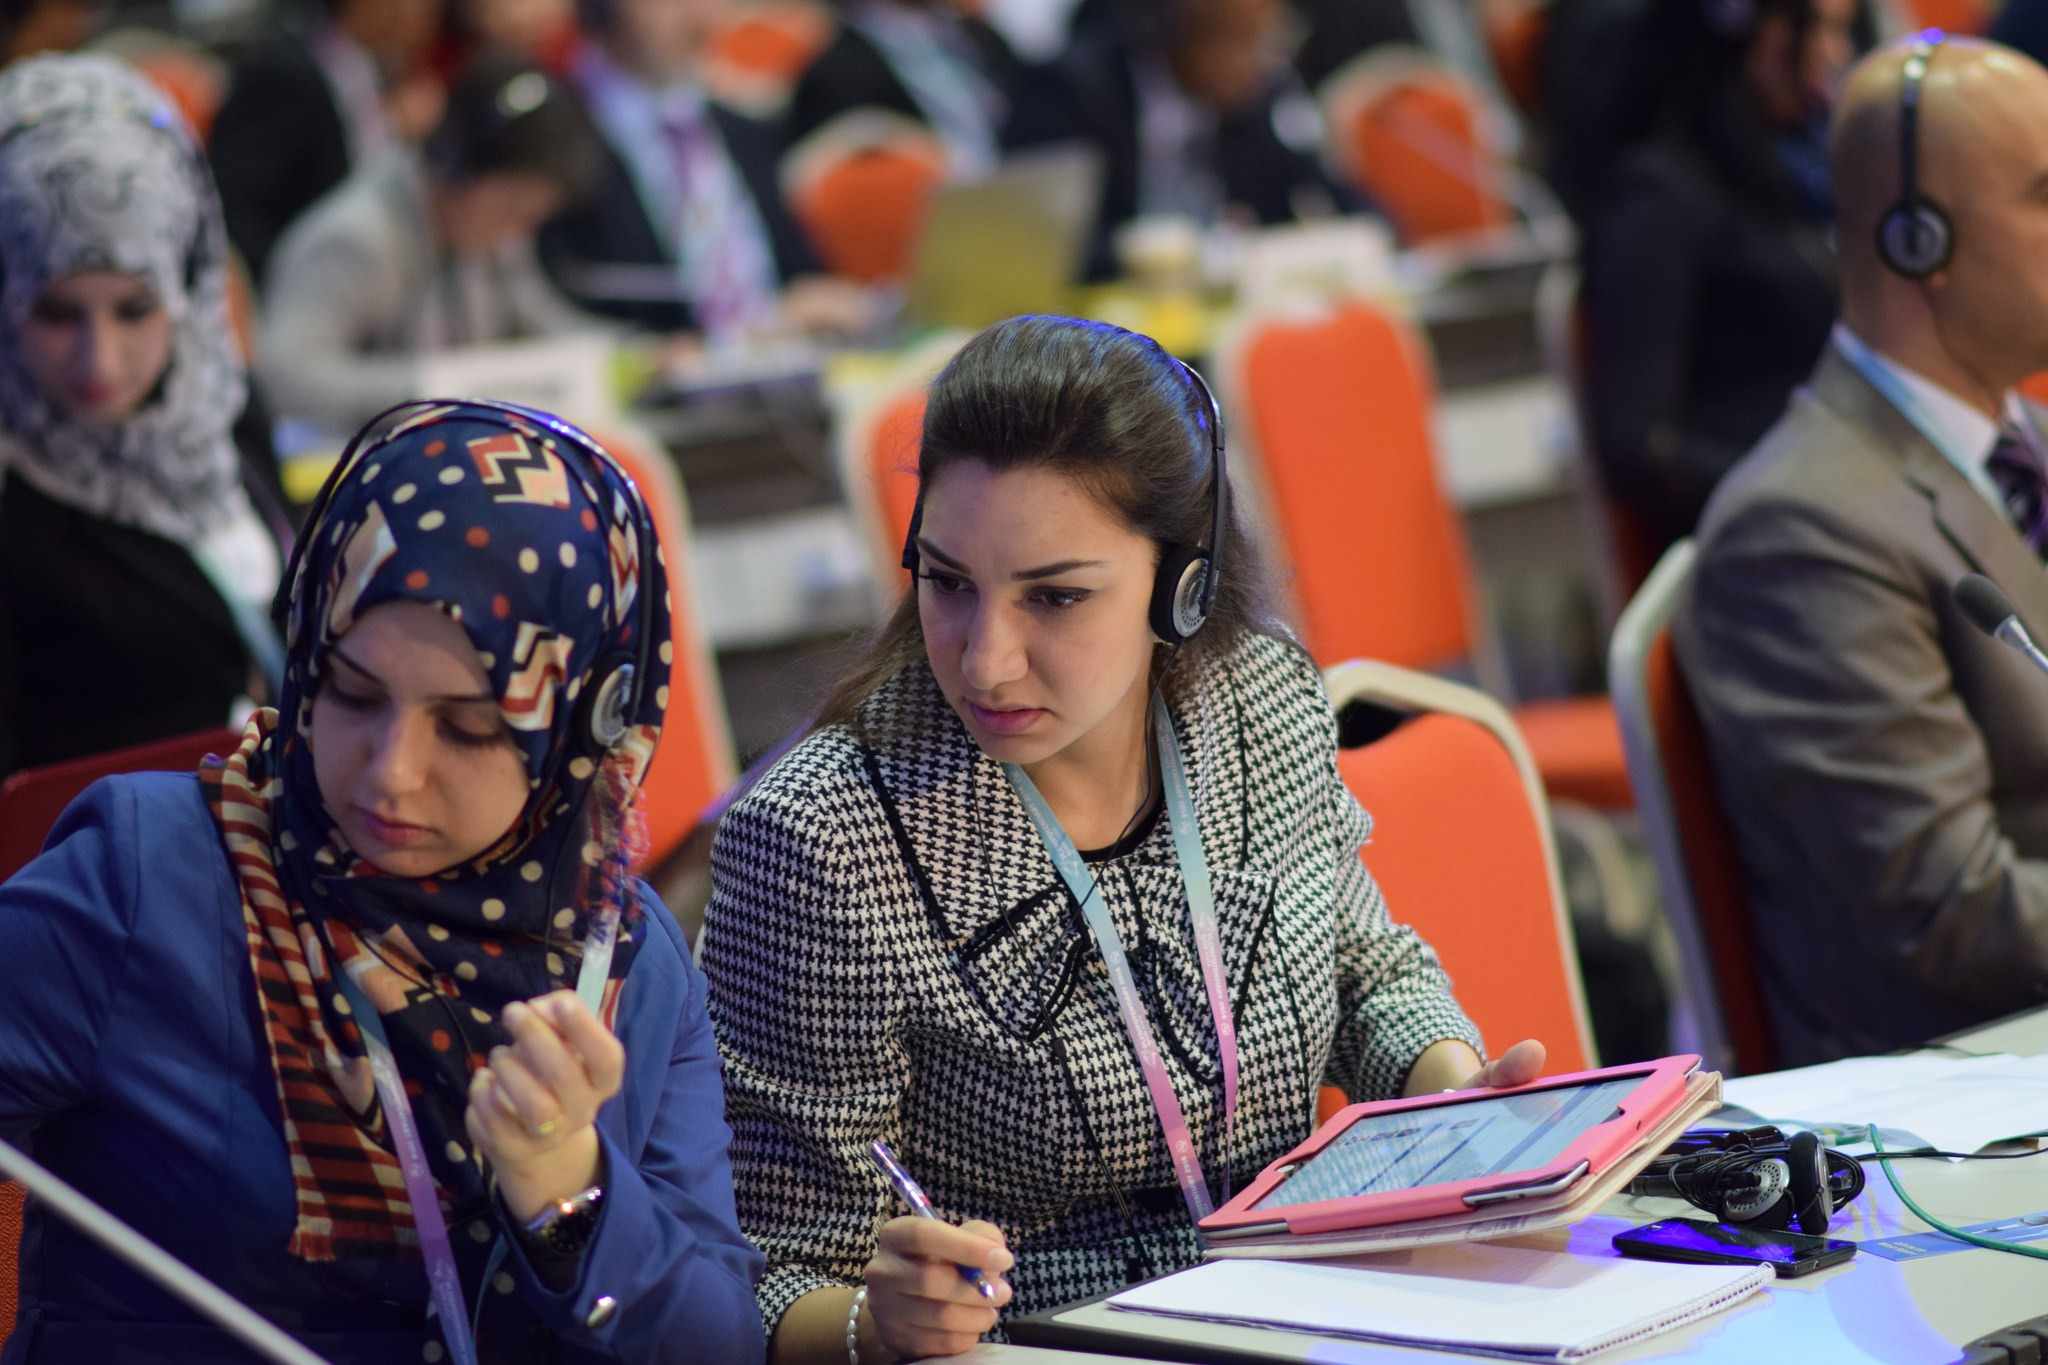 Observations from ISOC Chapter Fellows on the ITU Plenipotentiary Conference Thumbnail